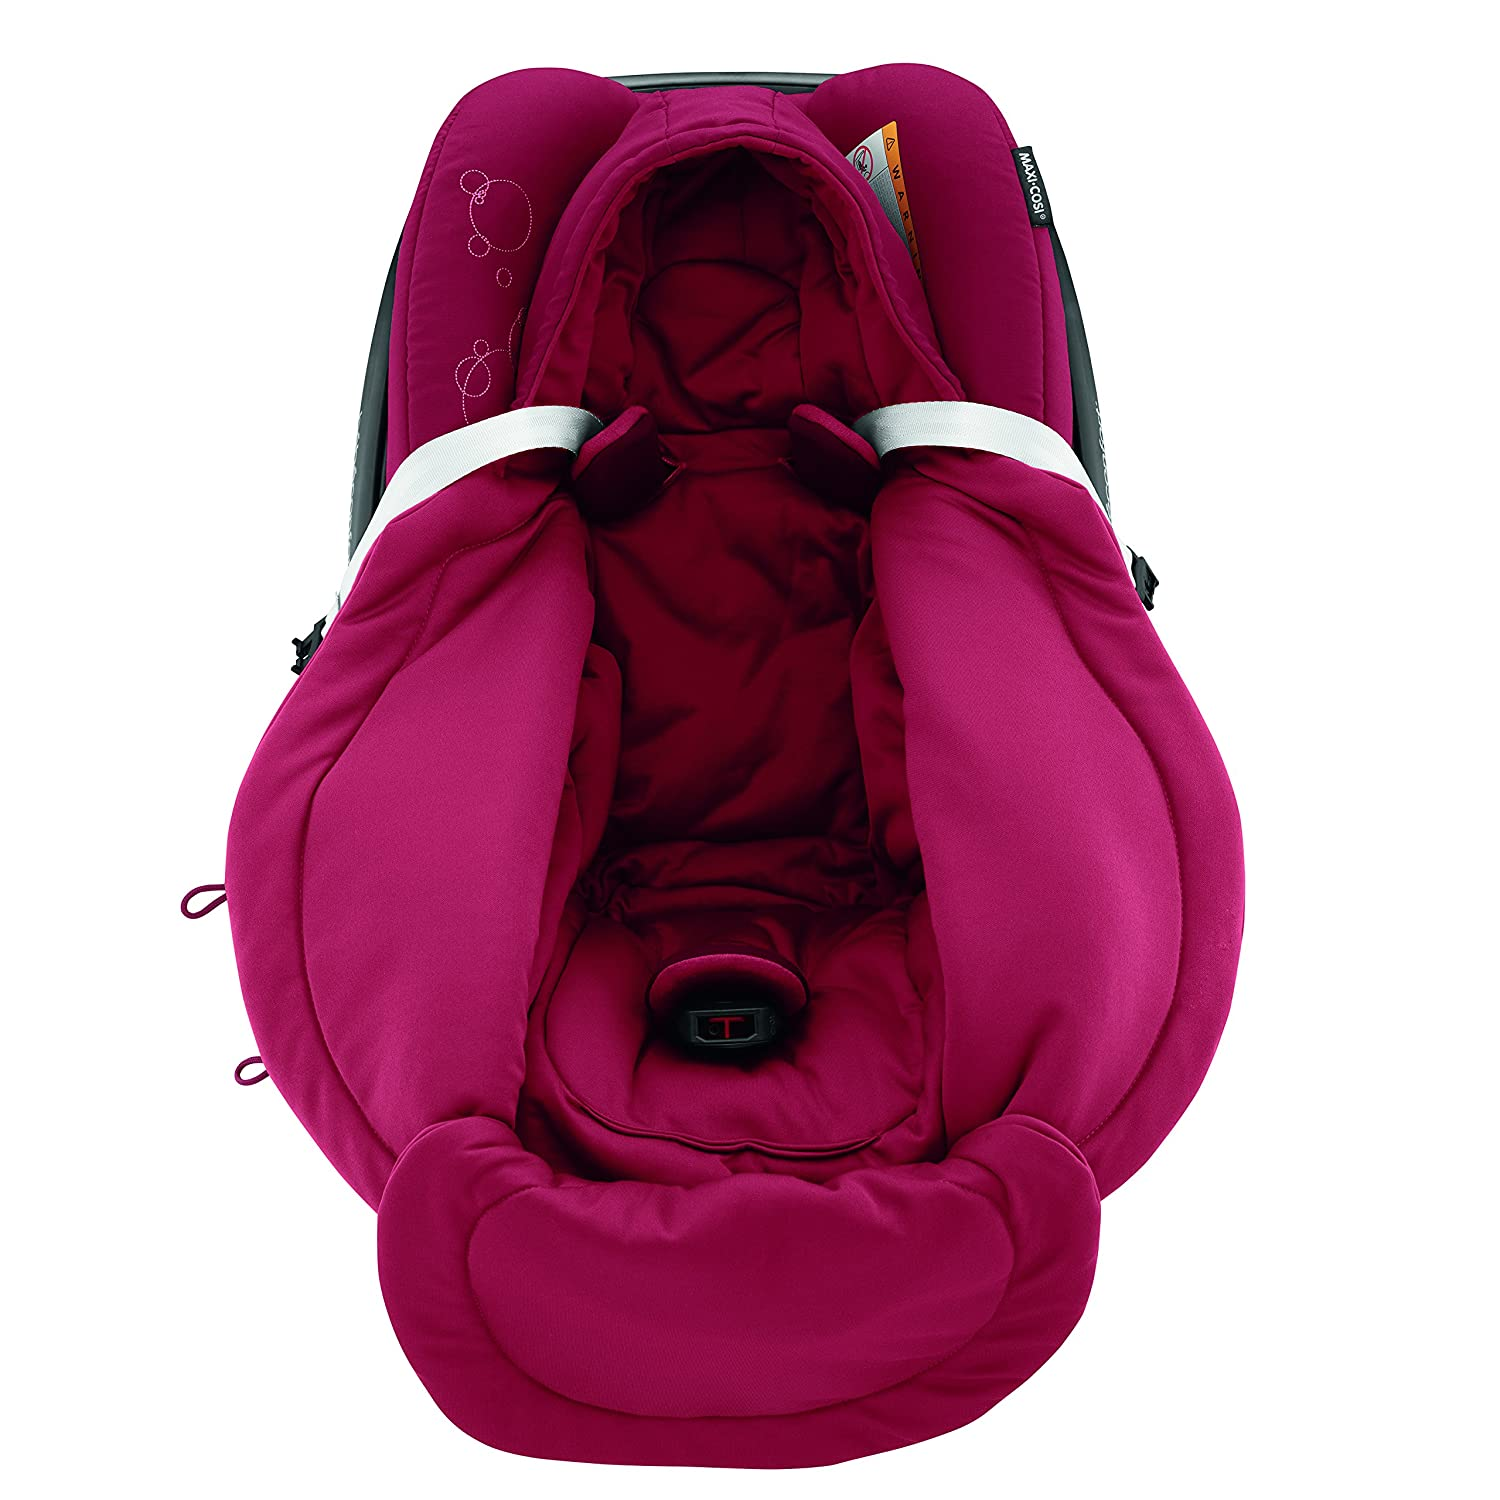 Warm Footmuff Suitable From Birth Maxi-Cosi Winter Footmuff for Baby Car Seats Vivid Red